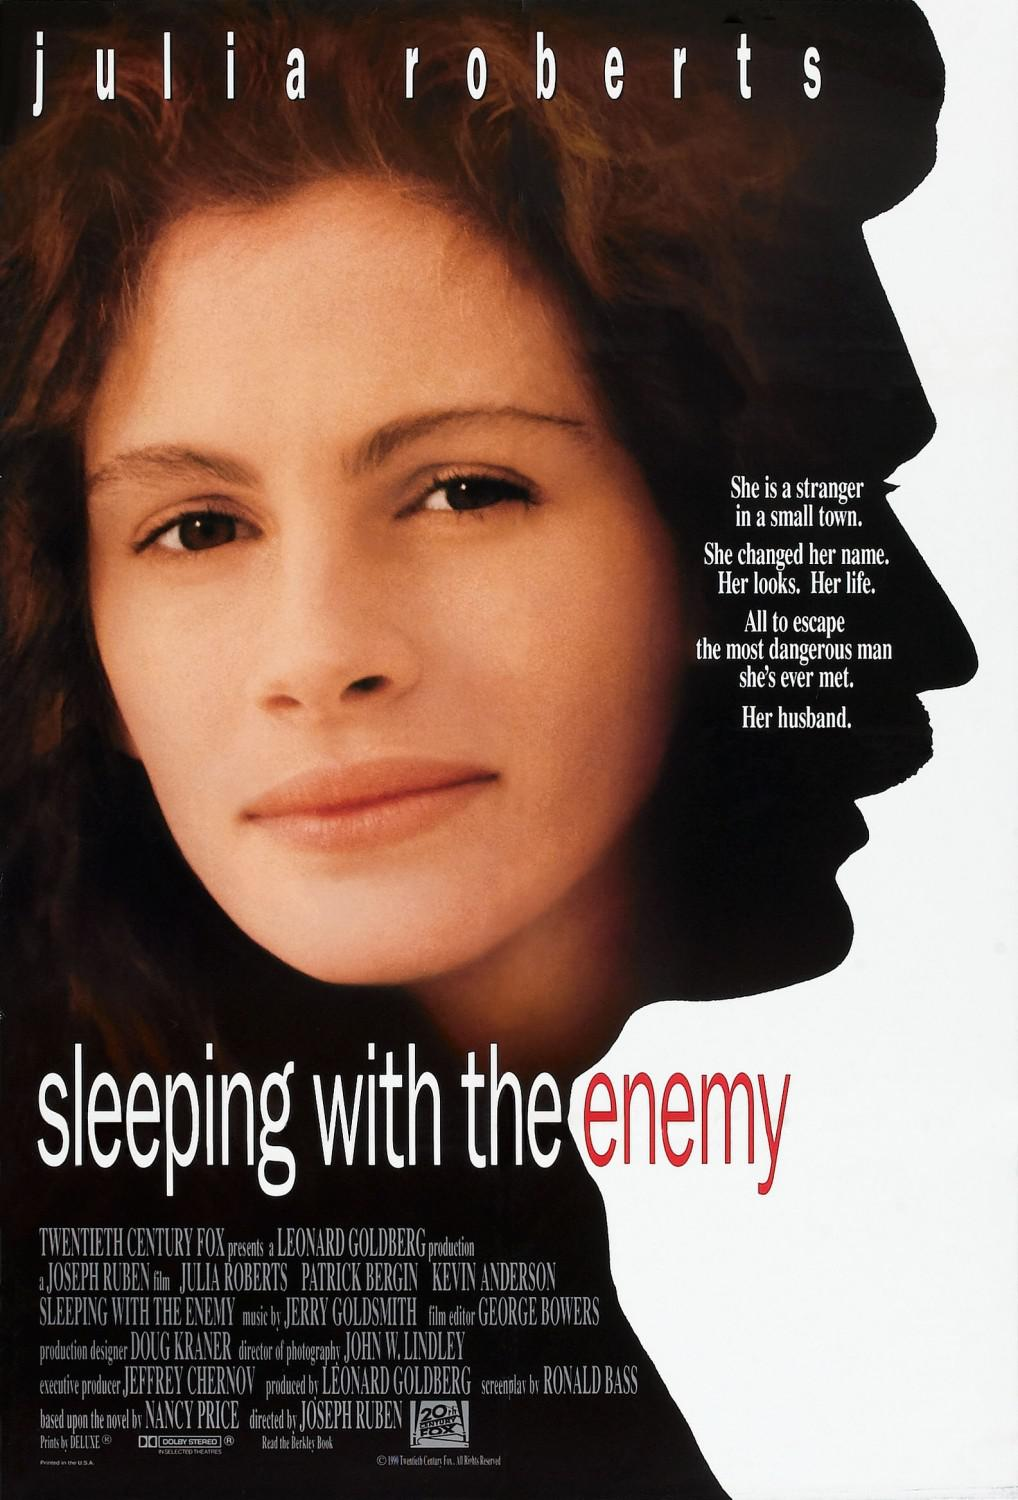 Sleeping with the Enemy - A Letto con il Nemico - Julia Roberts